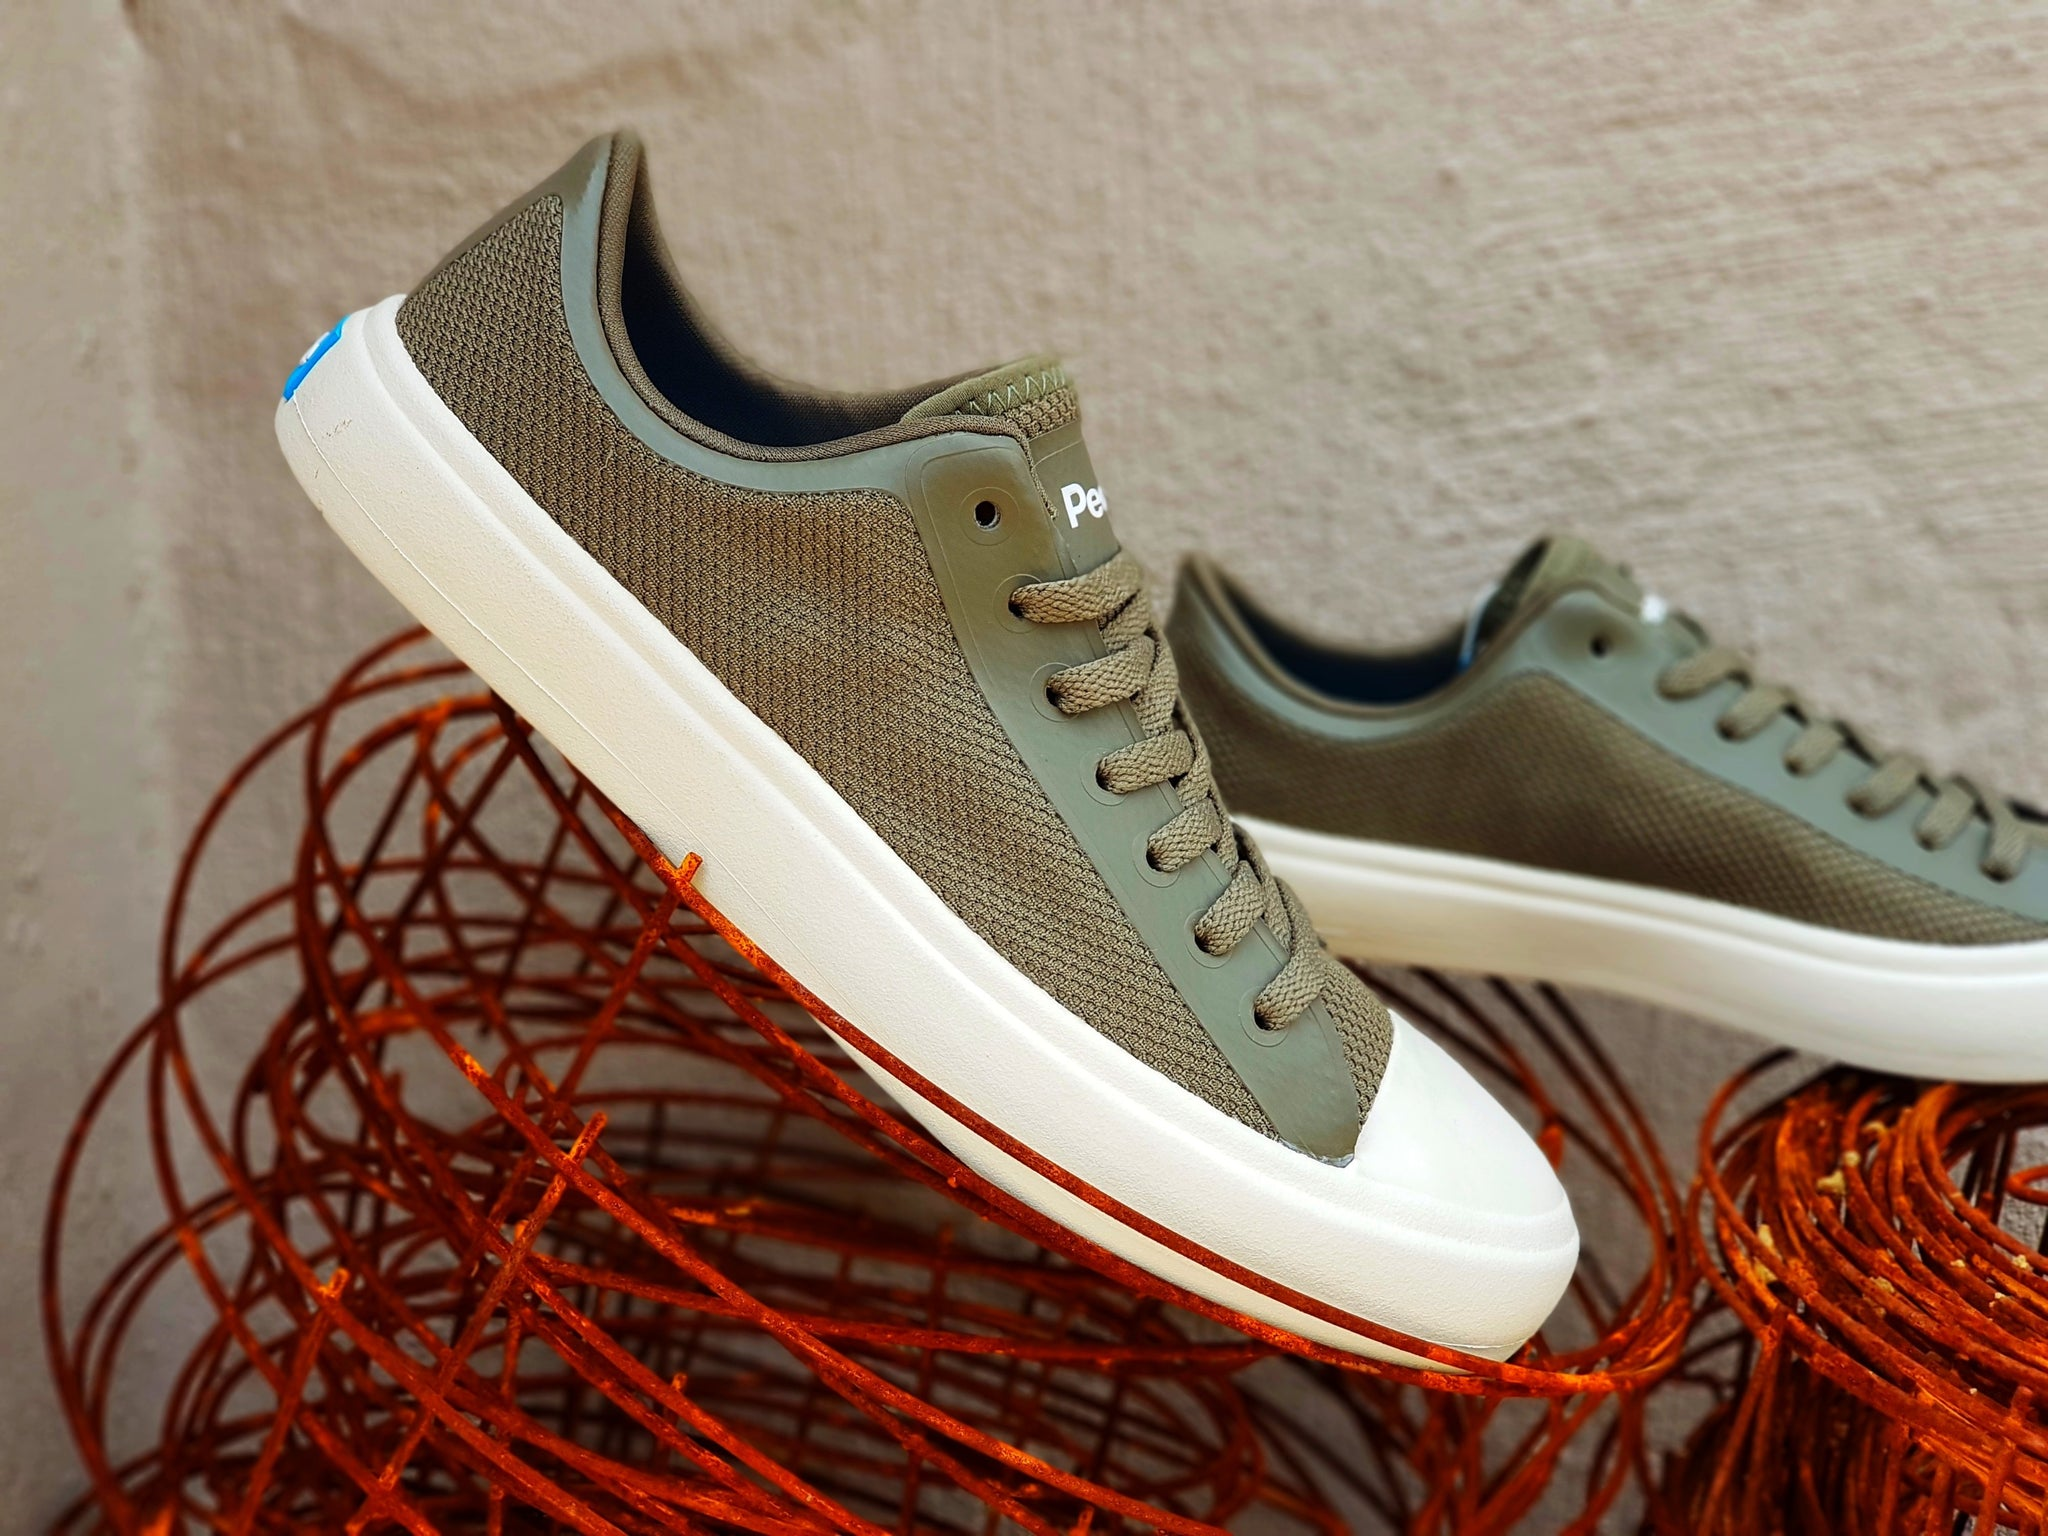 People Footwear - The Phillips (Bunker Green / Picket White)